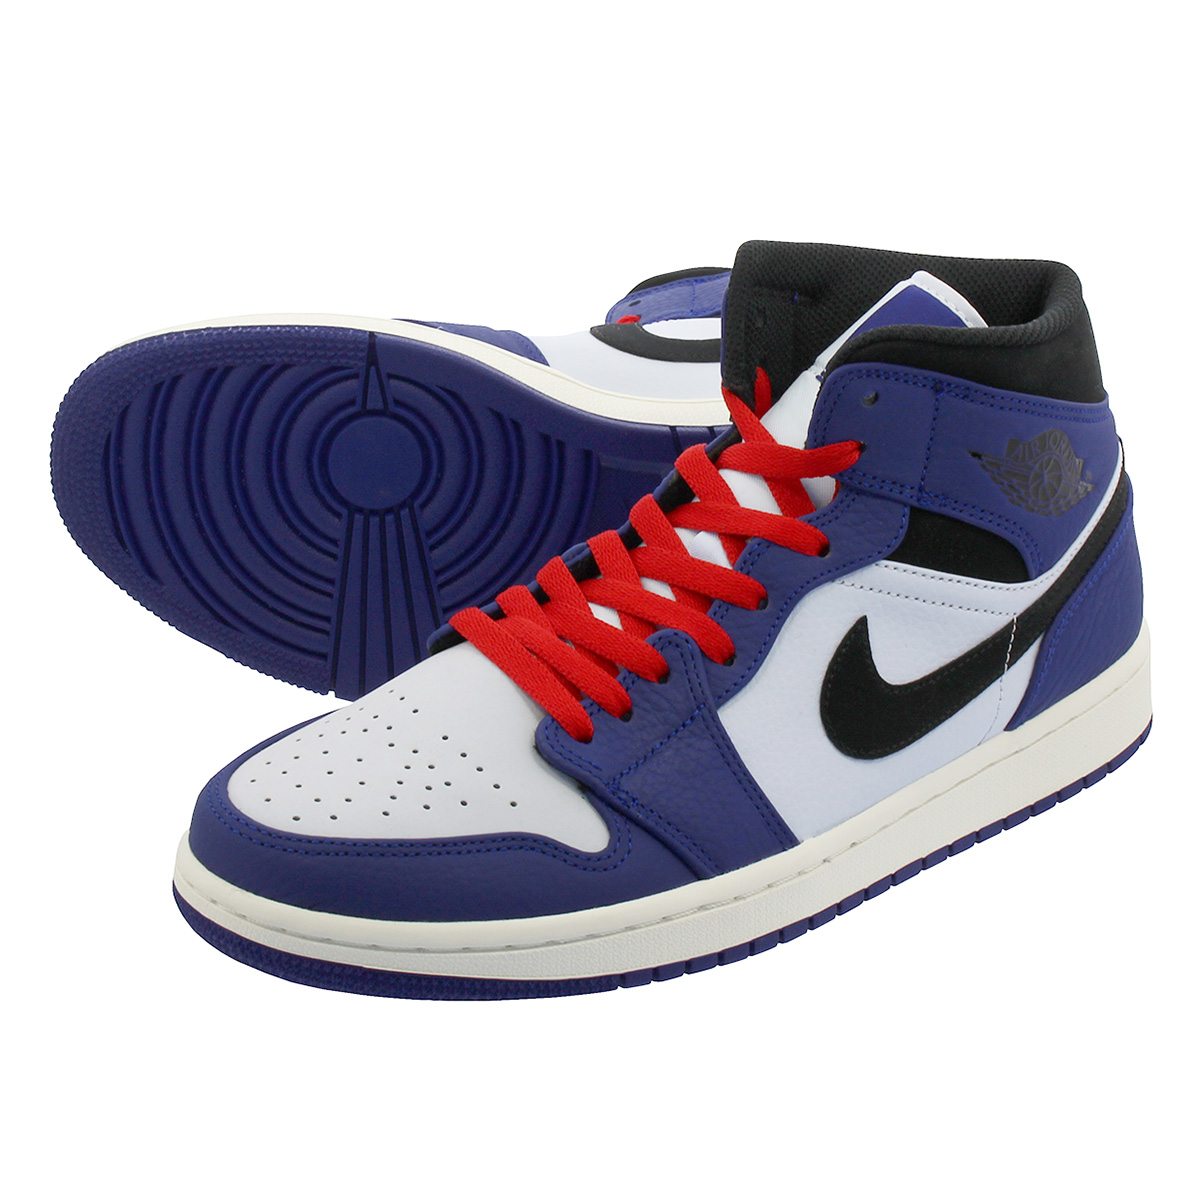 196be43401c LOWTEX PLUS  NIKE AIR JORDAN 1 MID SE Nike Air Jordan 1 mid SE DEEP ROYAL  BLUE BLACK 852